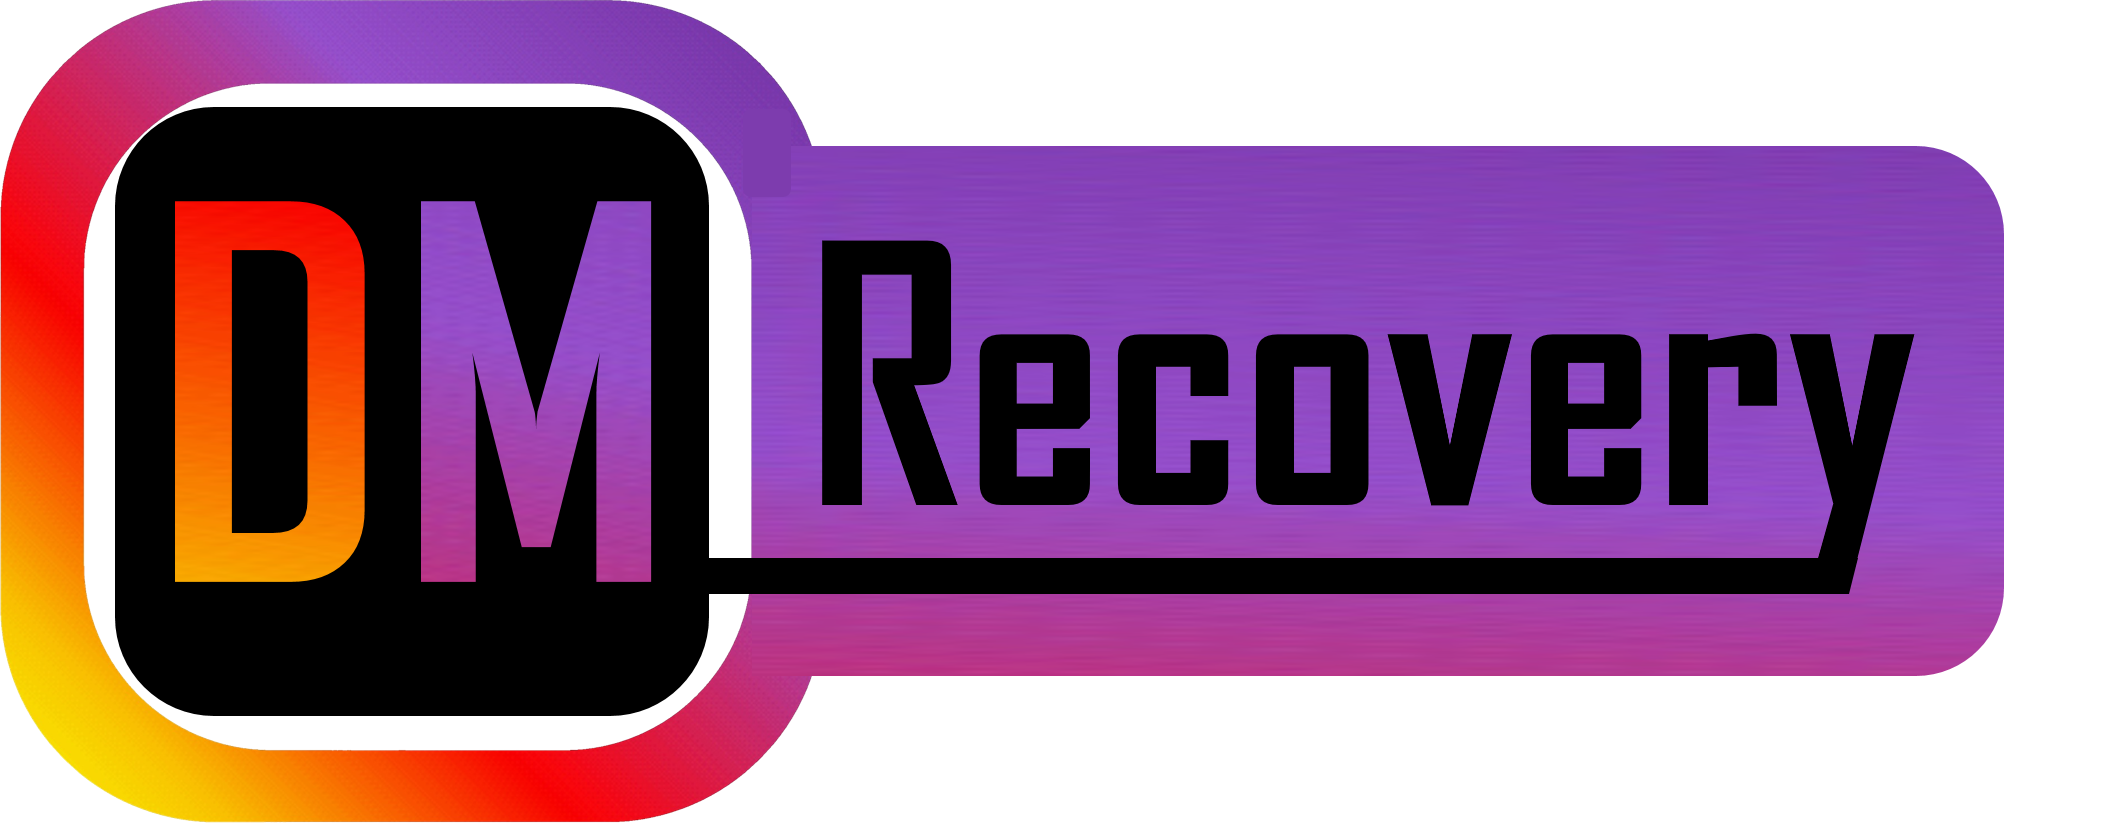 DM Recovery Logo, Instagram Deleted messages recover tool, Recover deleted insta messages, Insta recovery -